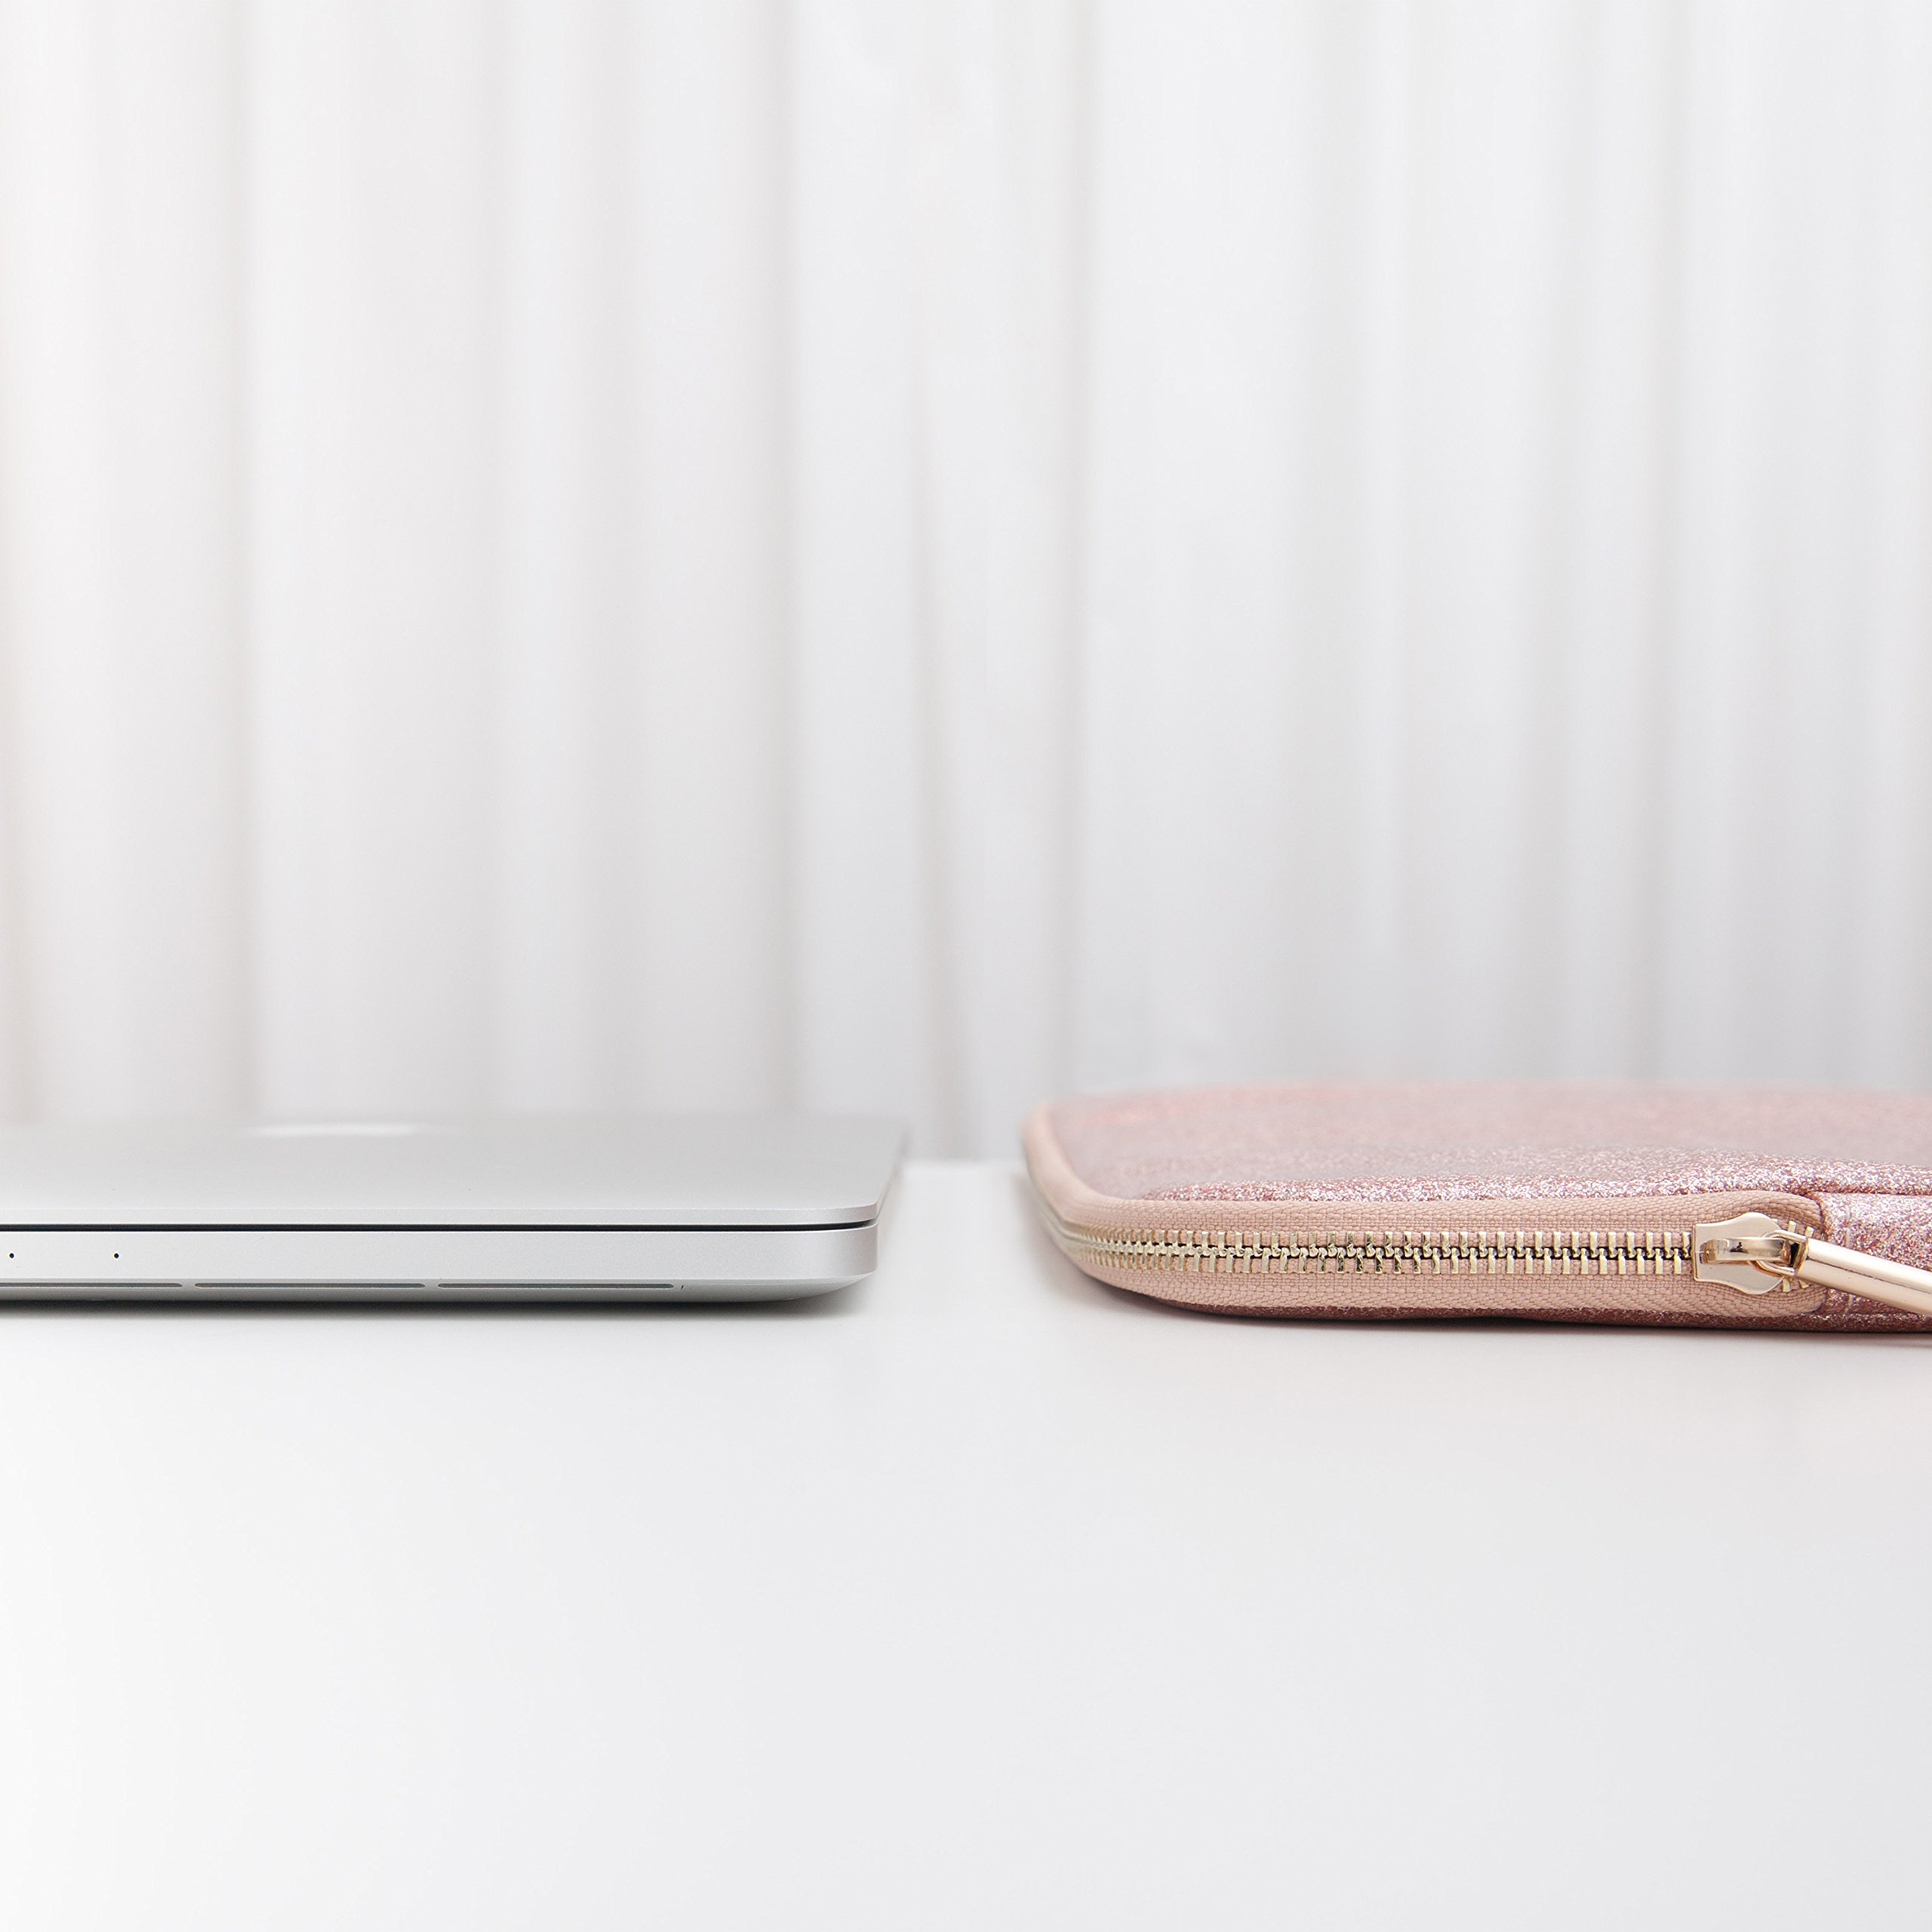 Comfyable Laptop Sleeve for MacBook Pro 13-13.3 Inch & Mac Air 13-13.3'', Notebook Computer Case w/Pocket- Waterproof & Soft Cover- Rose Gold Pink Glitter by Comfyable (Image #5)